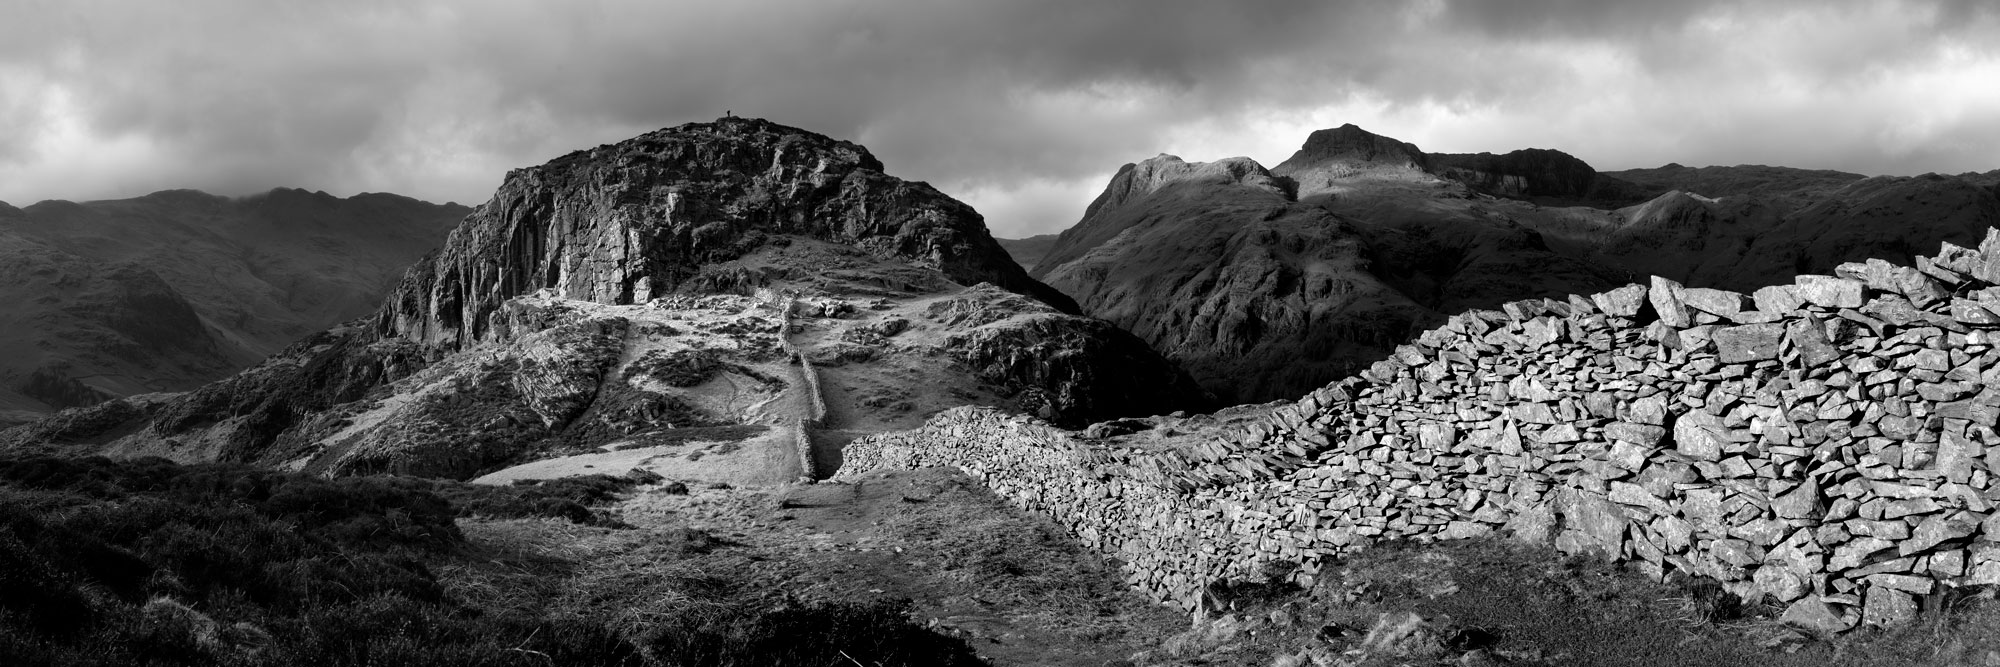 panoramic b&w print of the Langdale pikes from Lingmoor fell in the Lake District